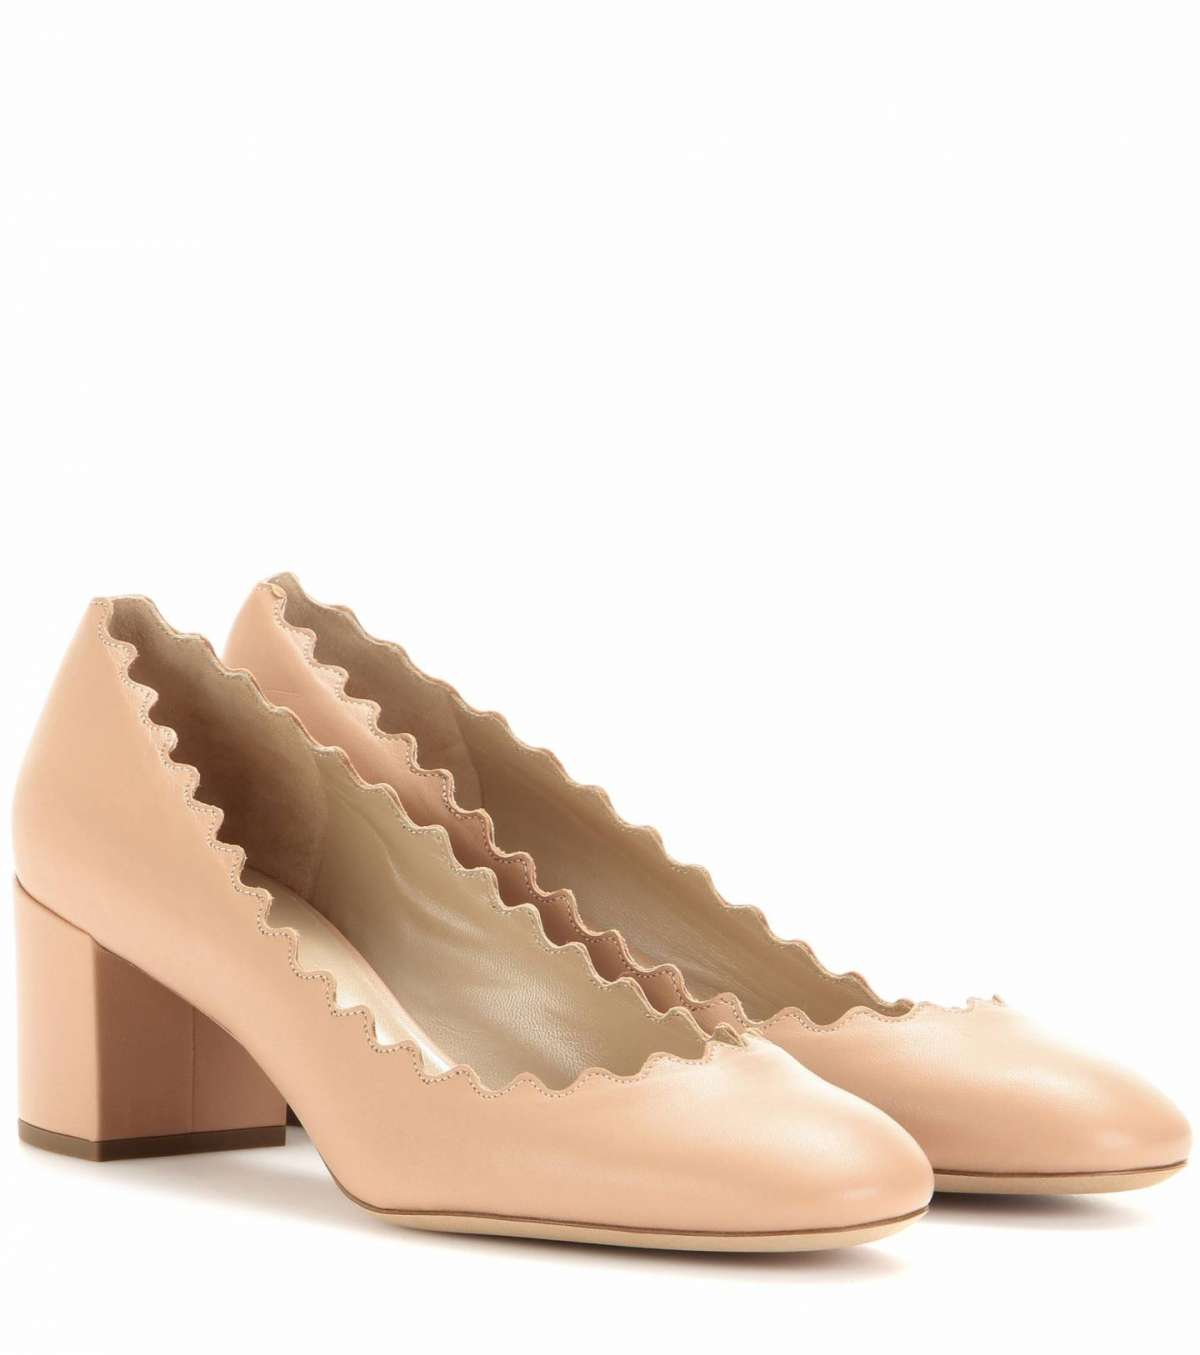 Pumps Chloè